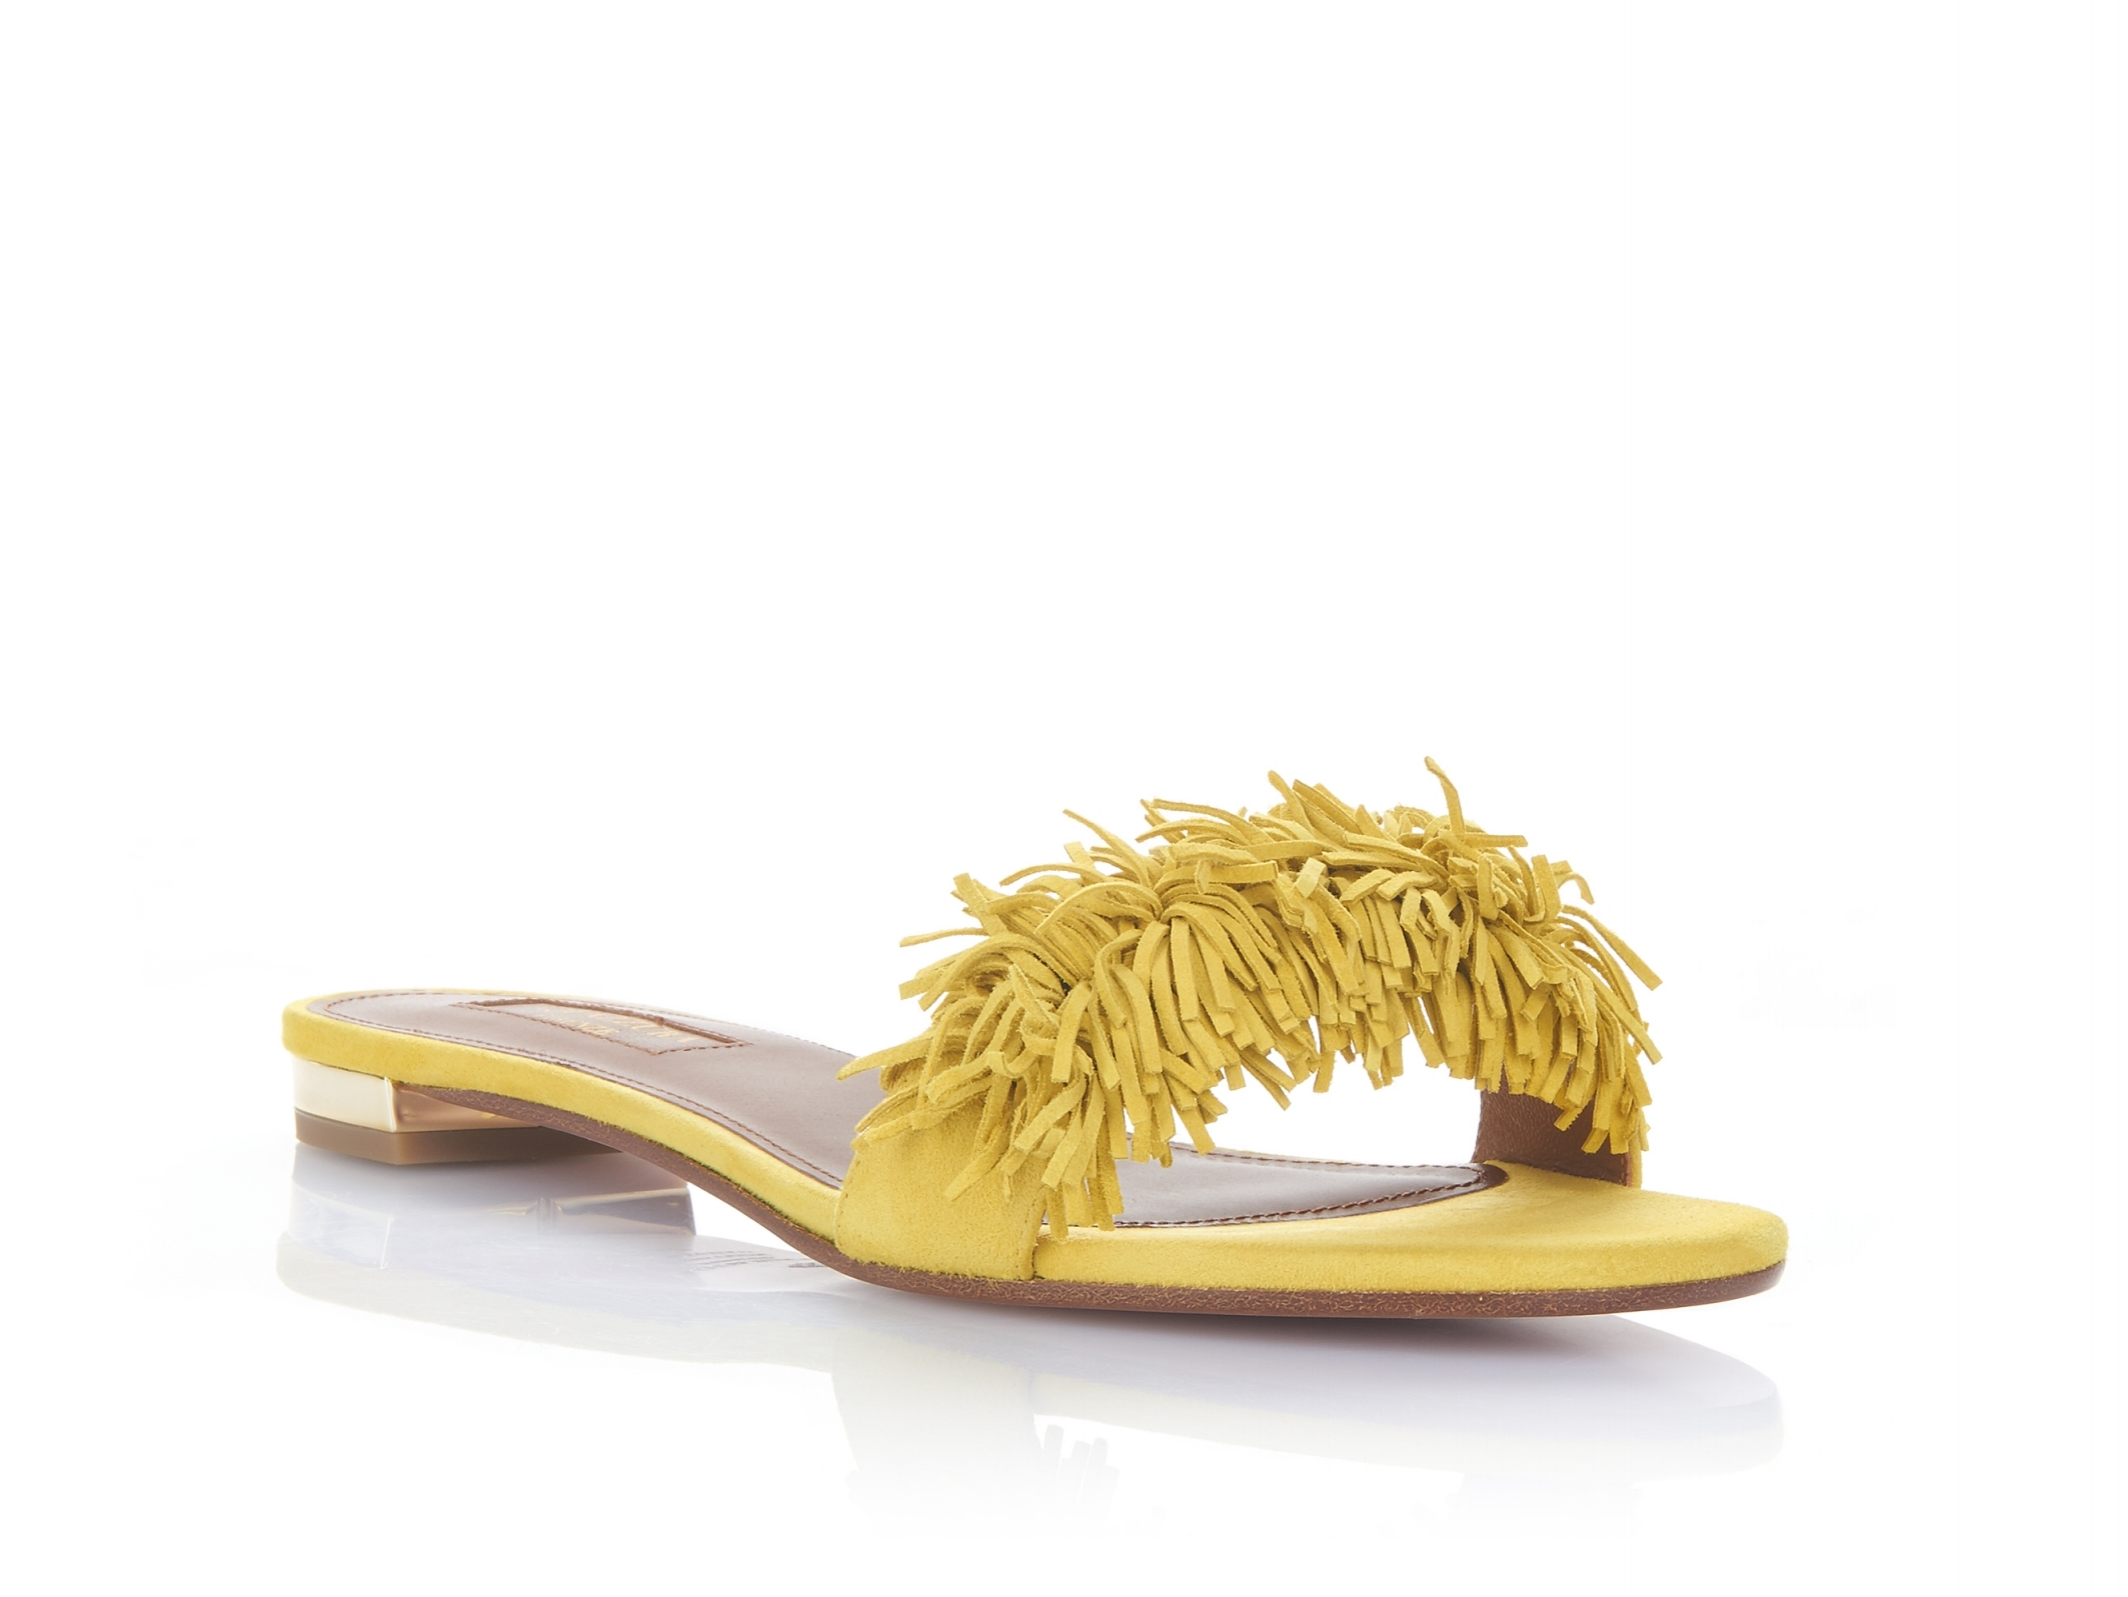 These slipper like slides are guaranteed to put a little spring in your step in the city, country or beach side. - Aquazurra Wild Thing Slide Flat                          aquazzura.com                                                       $475